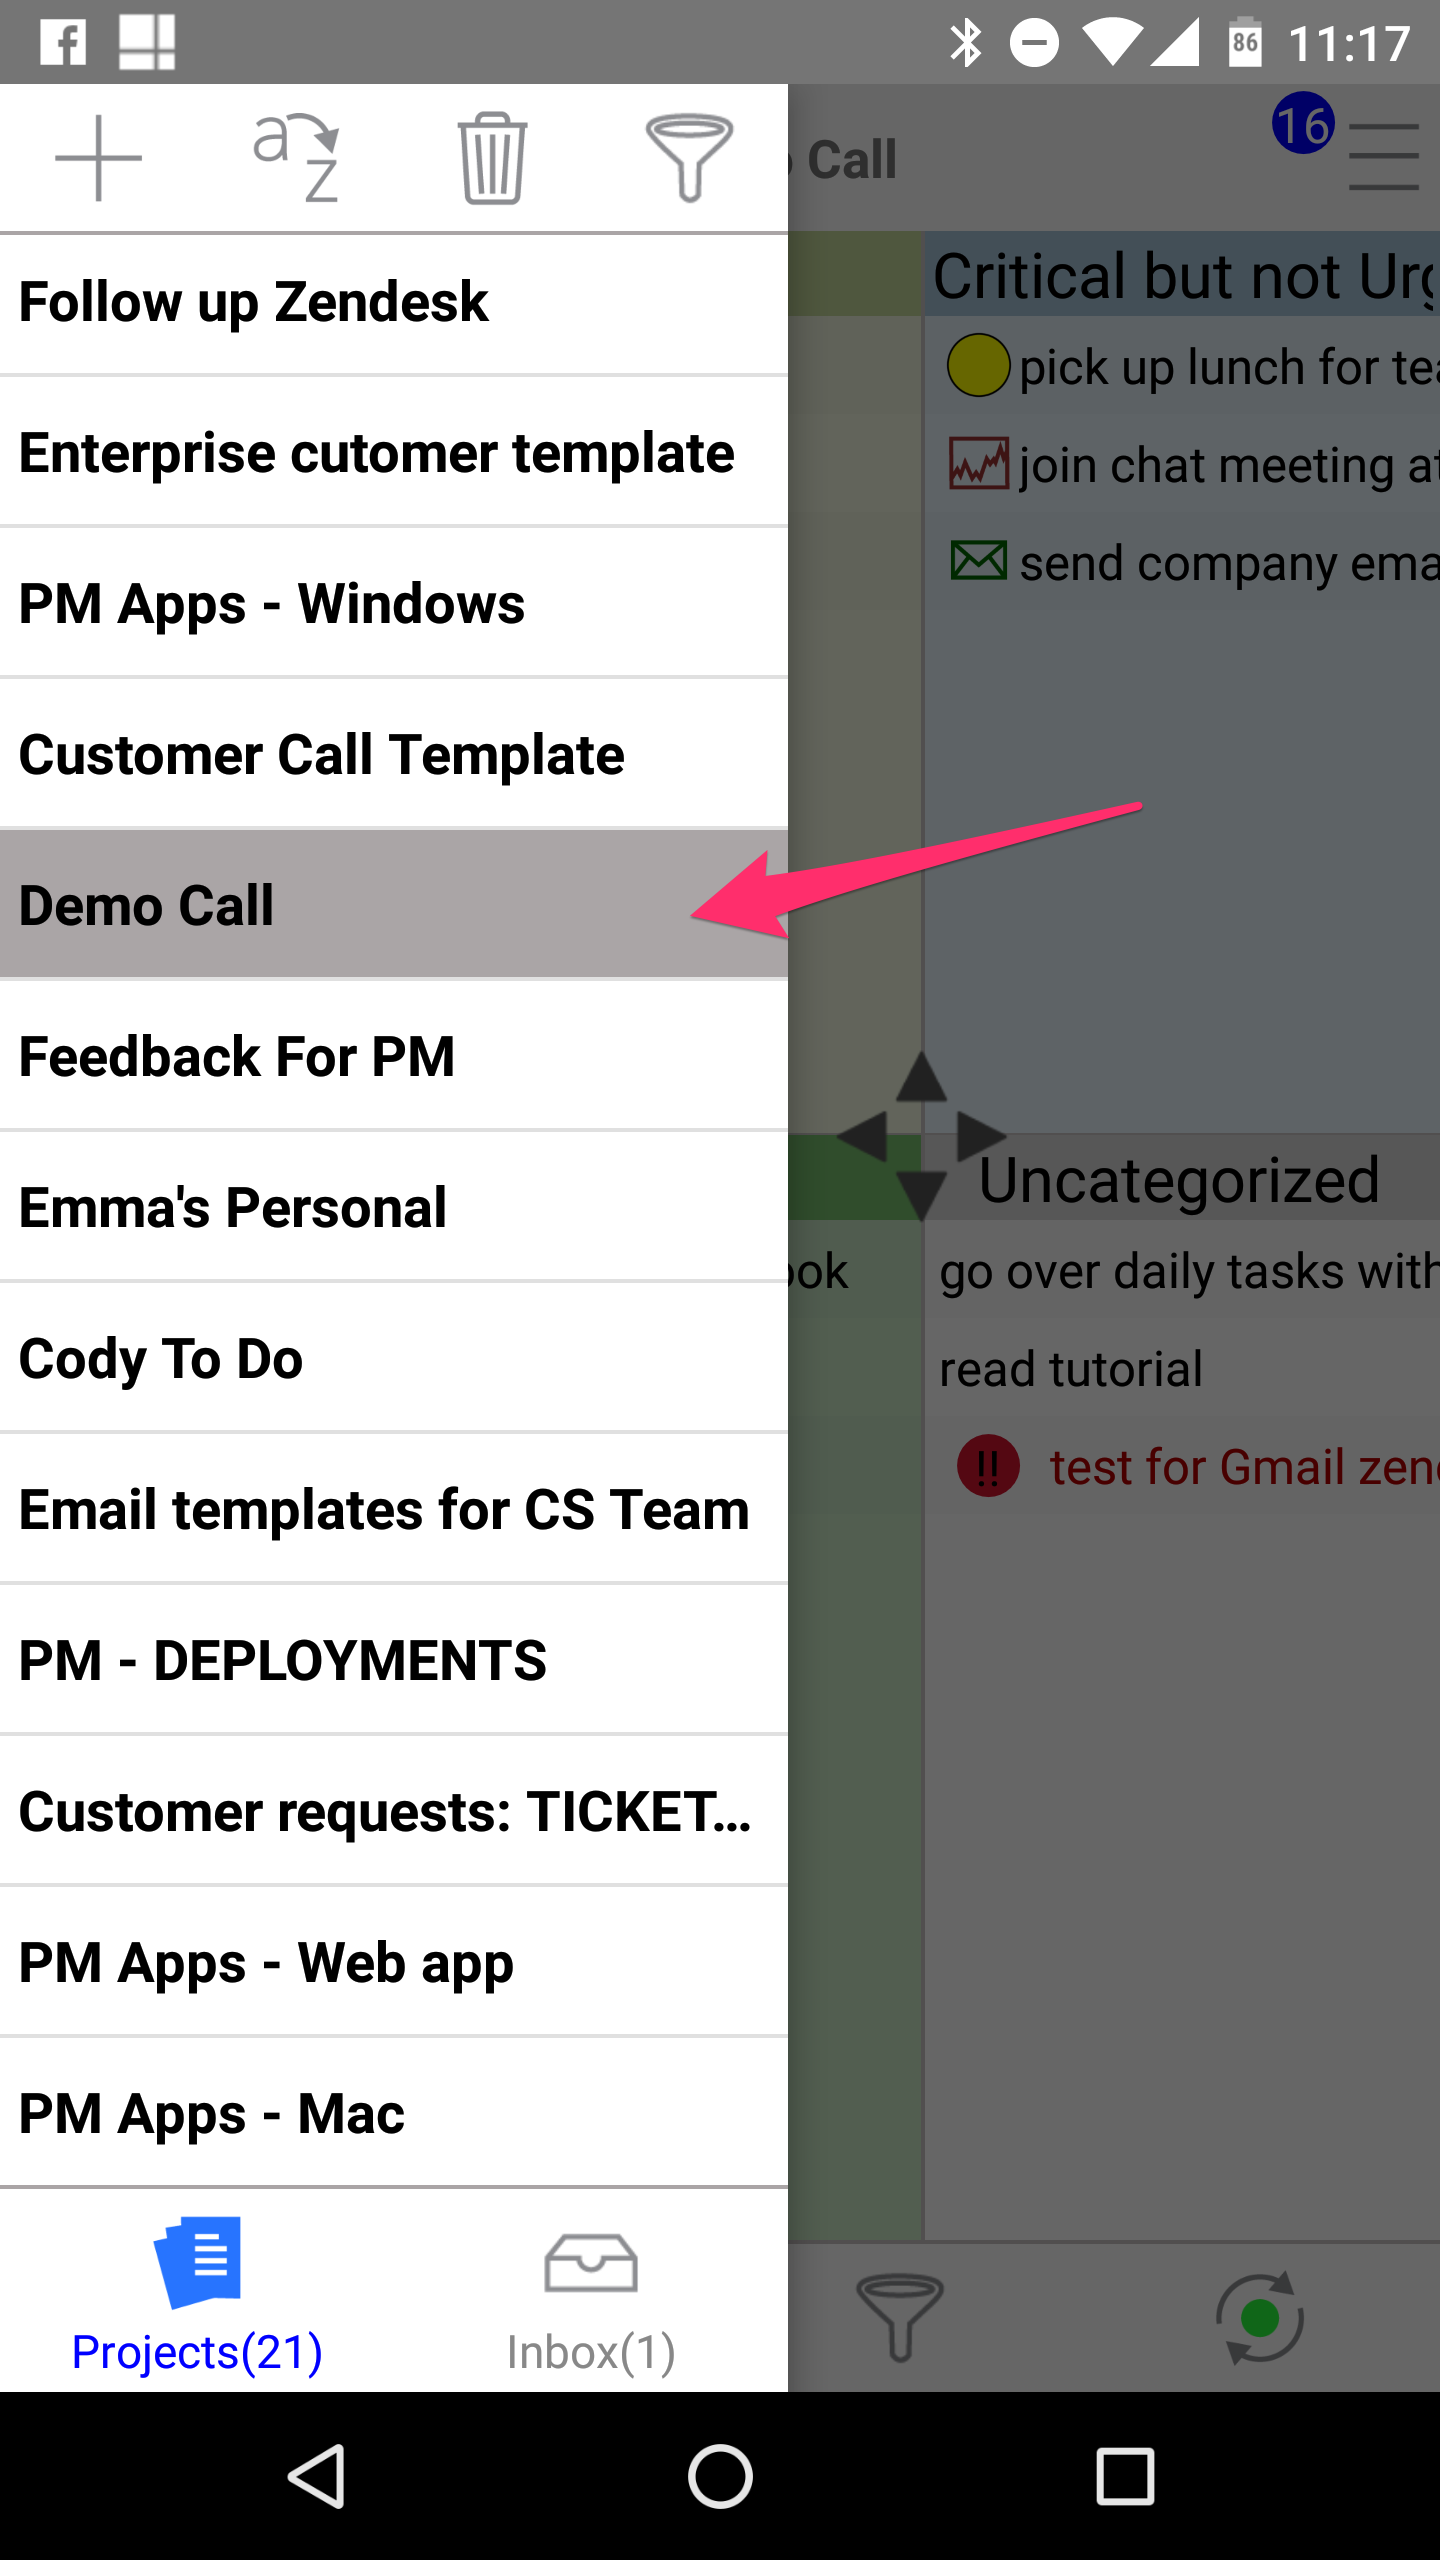 How Do I Add/Delete Project Tags In Android? - Priority Matrix Help ...